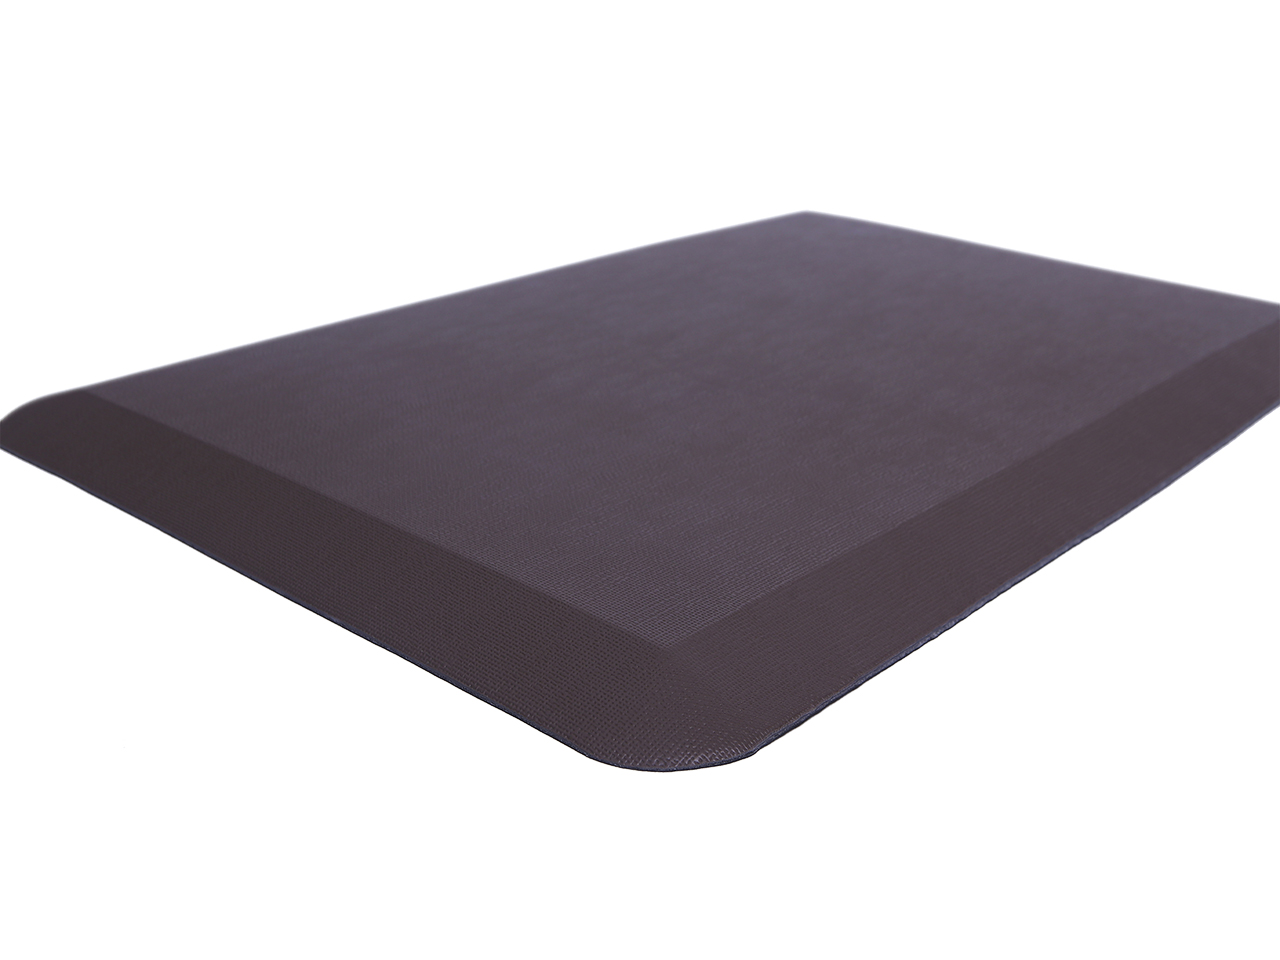 anti fatigue kitchen floor mat anti fatigue kitchen floor mats standing mat supplier 7456